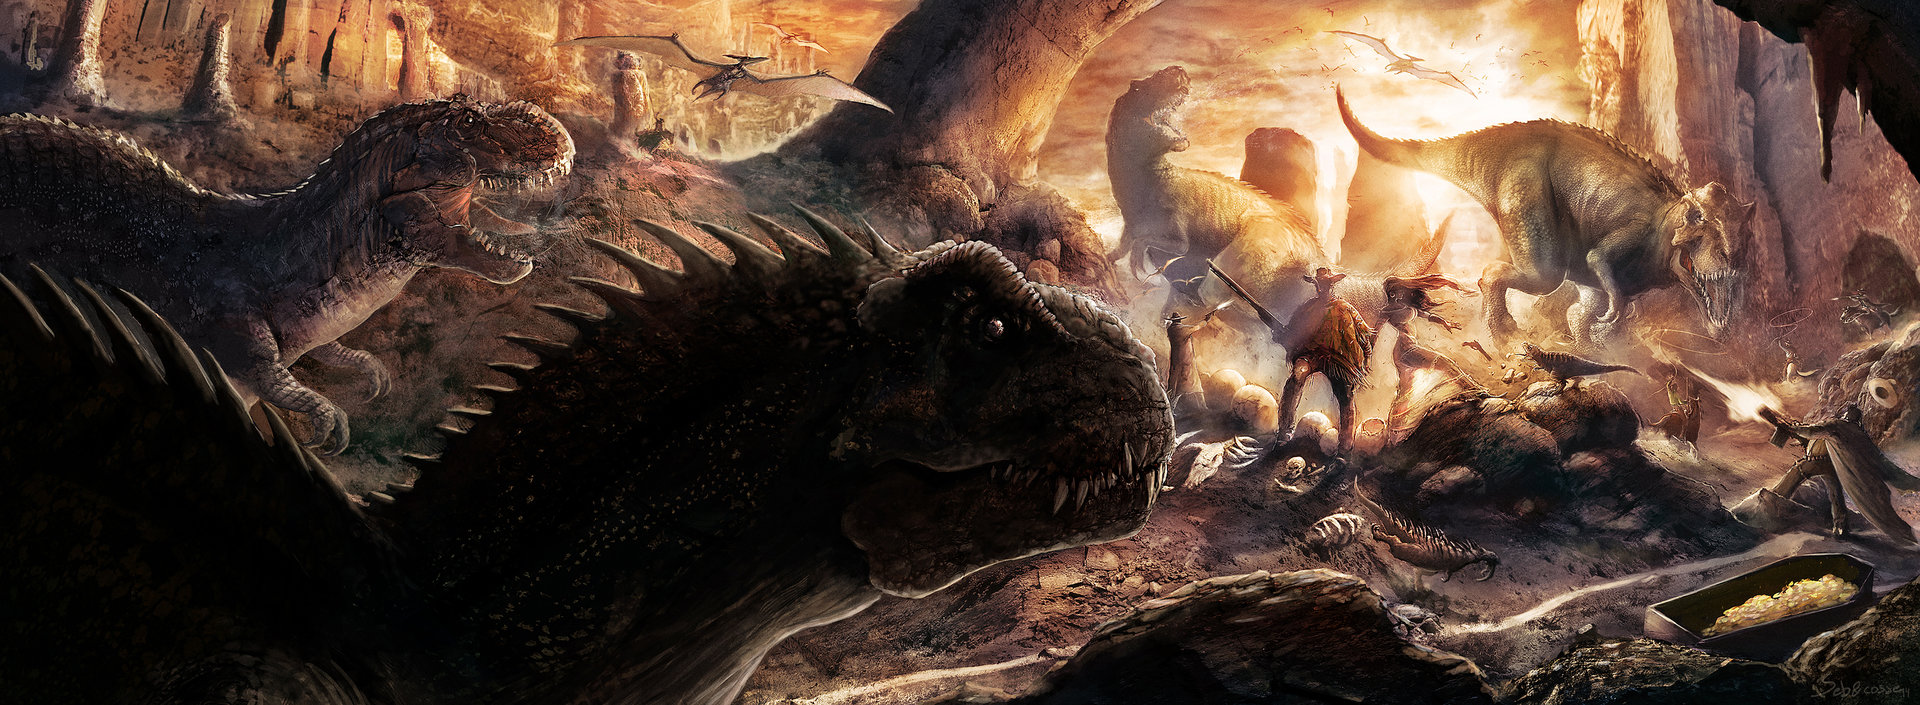 Sebastien ecosse corrected savage worlds deadlands cowboy western spaghetti dinosaurs gwangi book cover sebastien ecosse role playing game big res